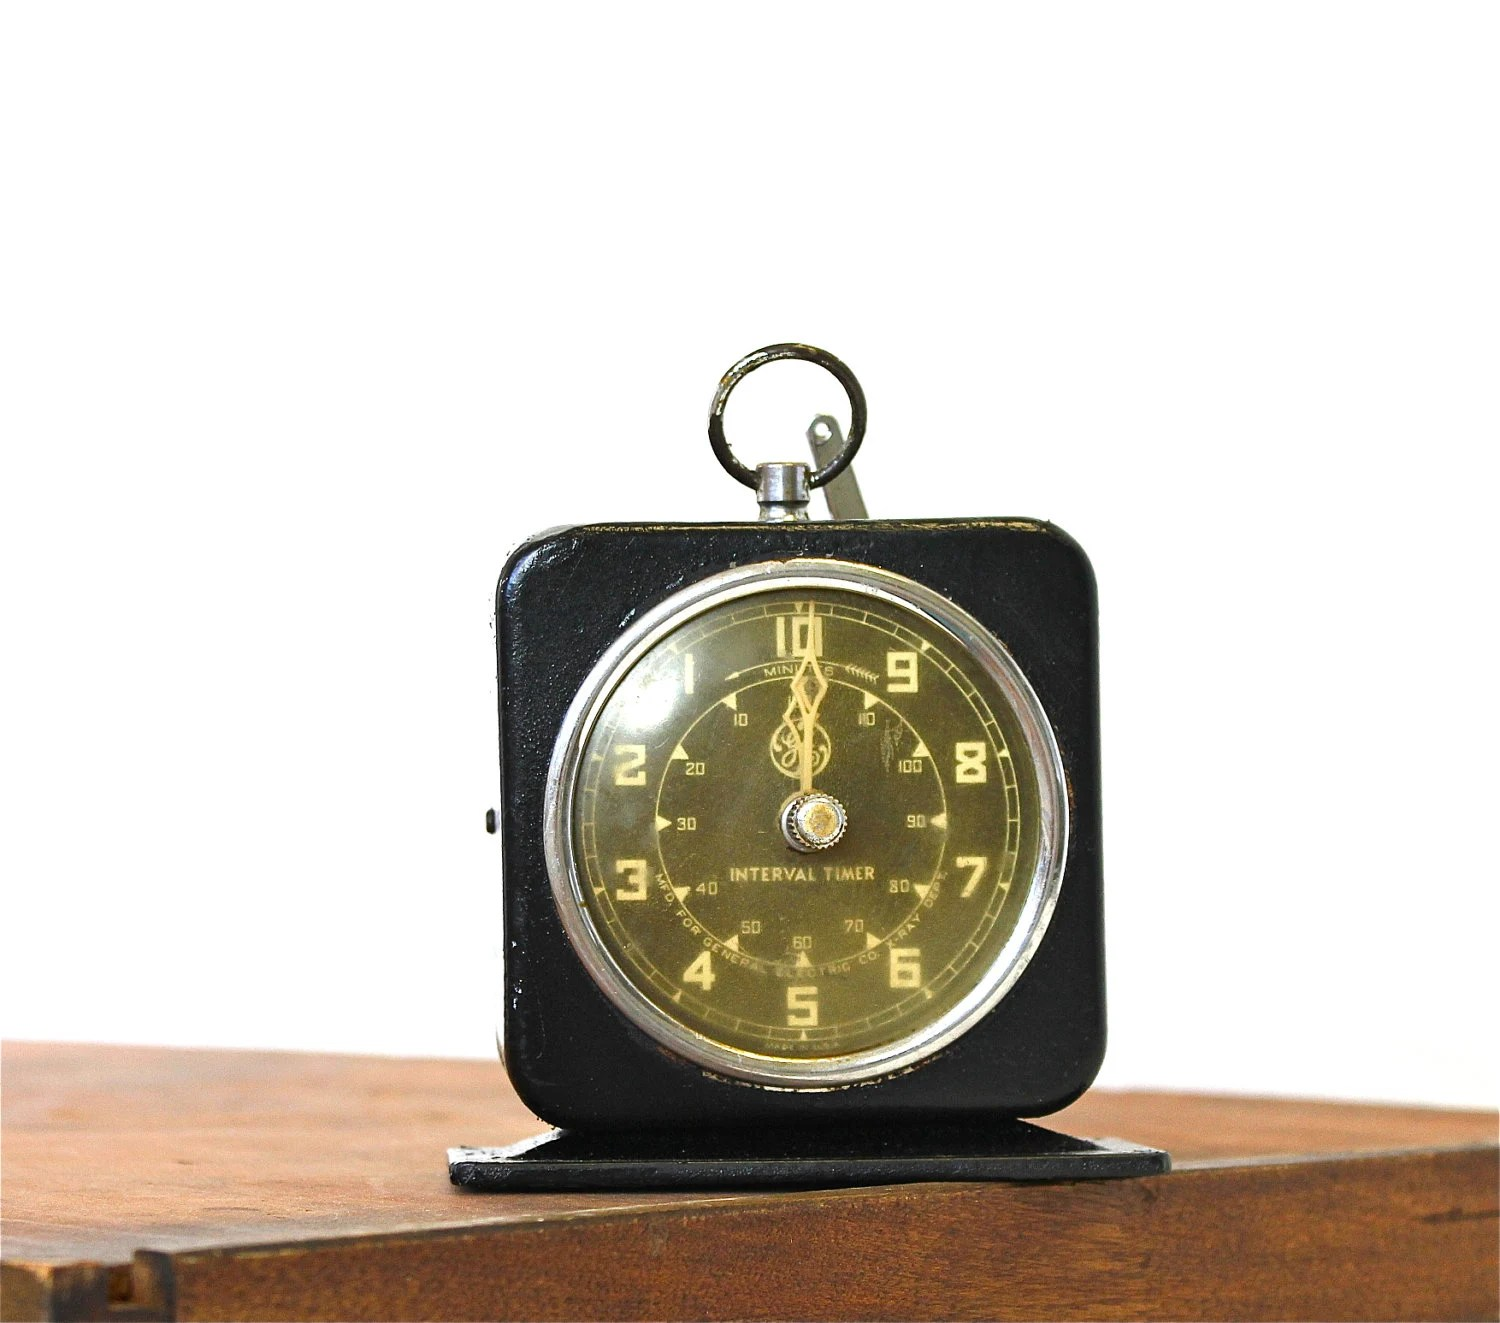 X Ray Department - Vintage GE Timer - Vintage Interval Timer - New Year - Numbers - Industrial - becaruns